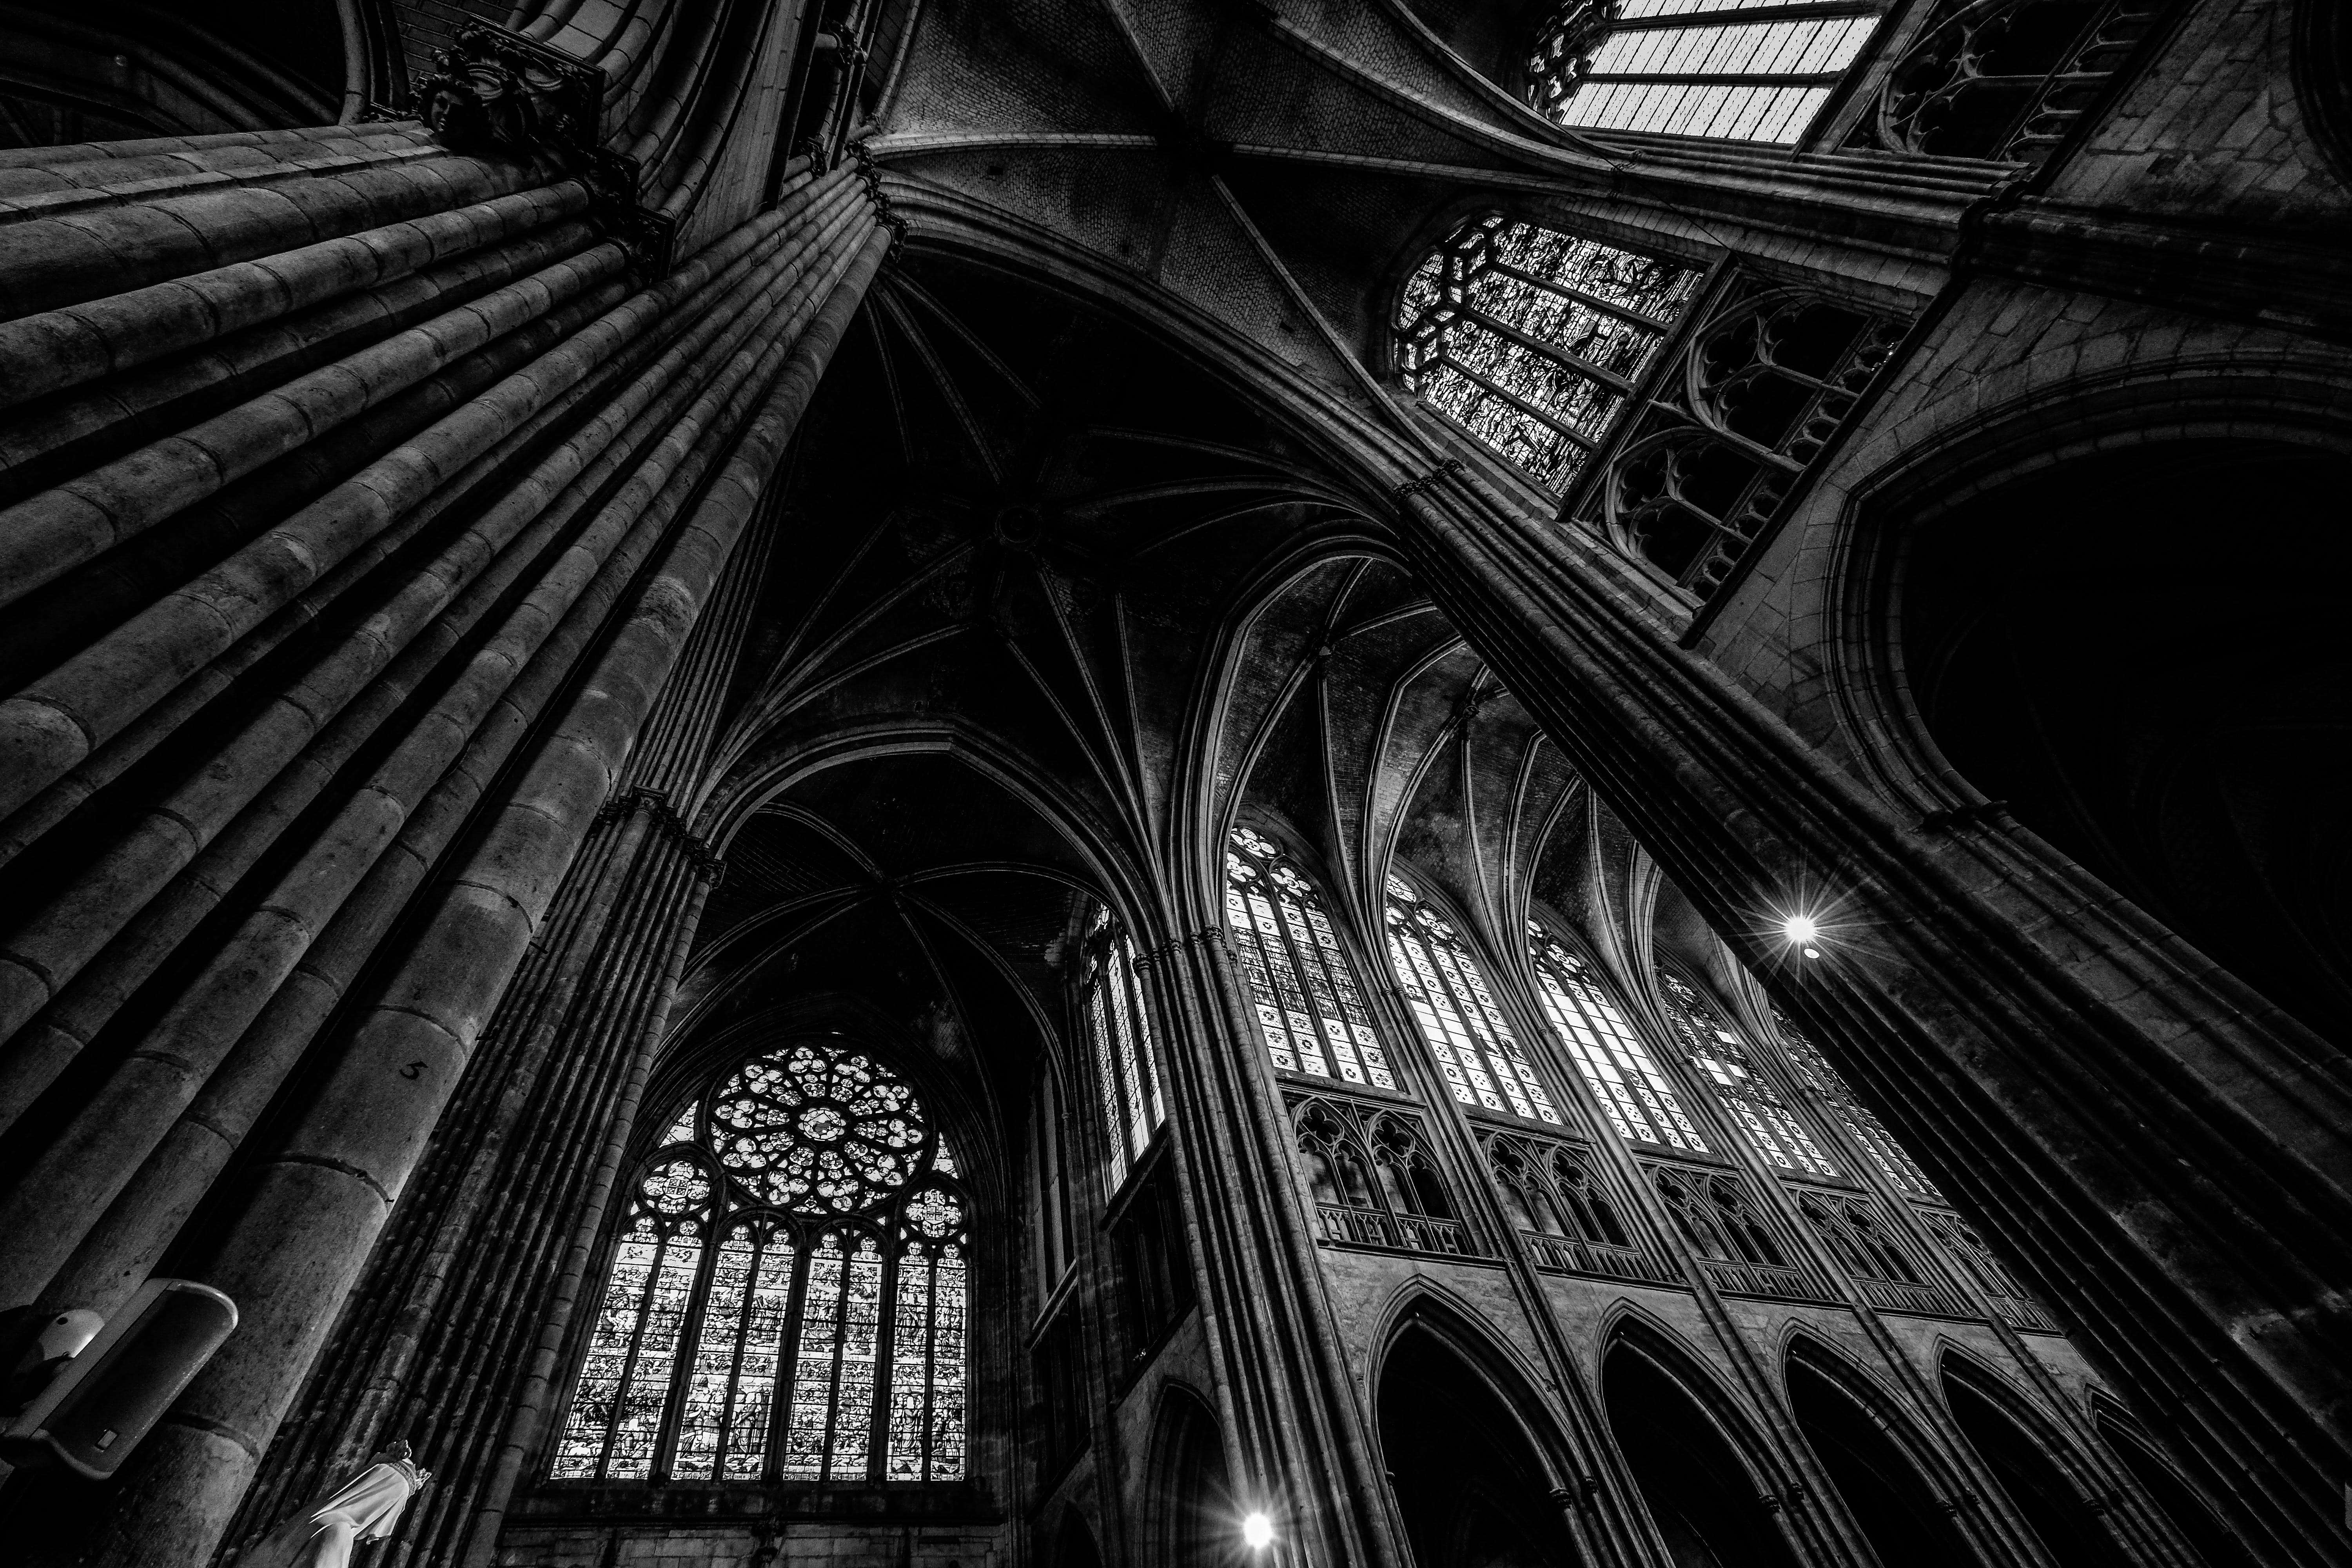 Grayscale Photography of Cathedral Ceiling